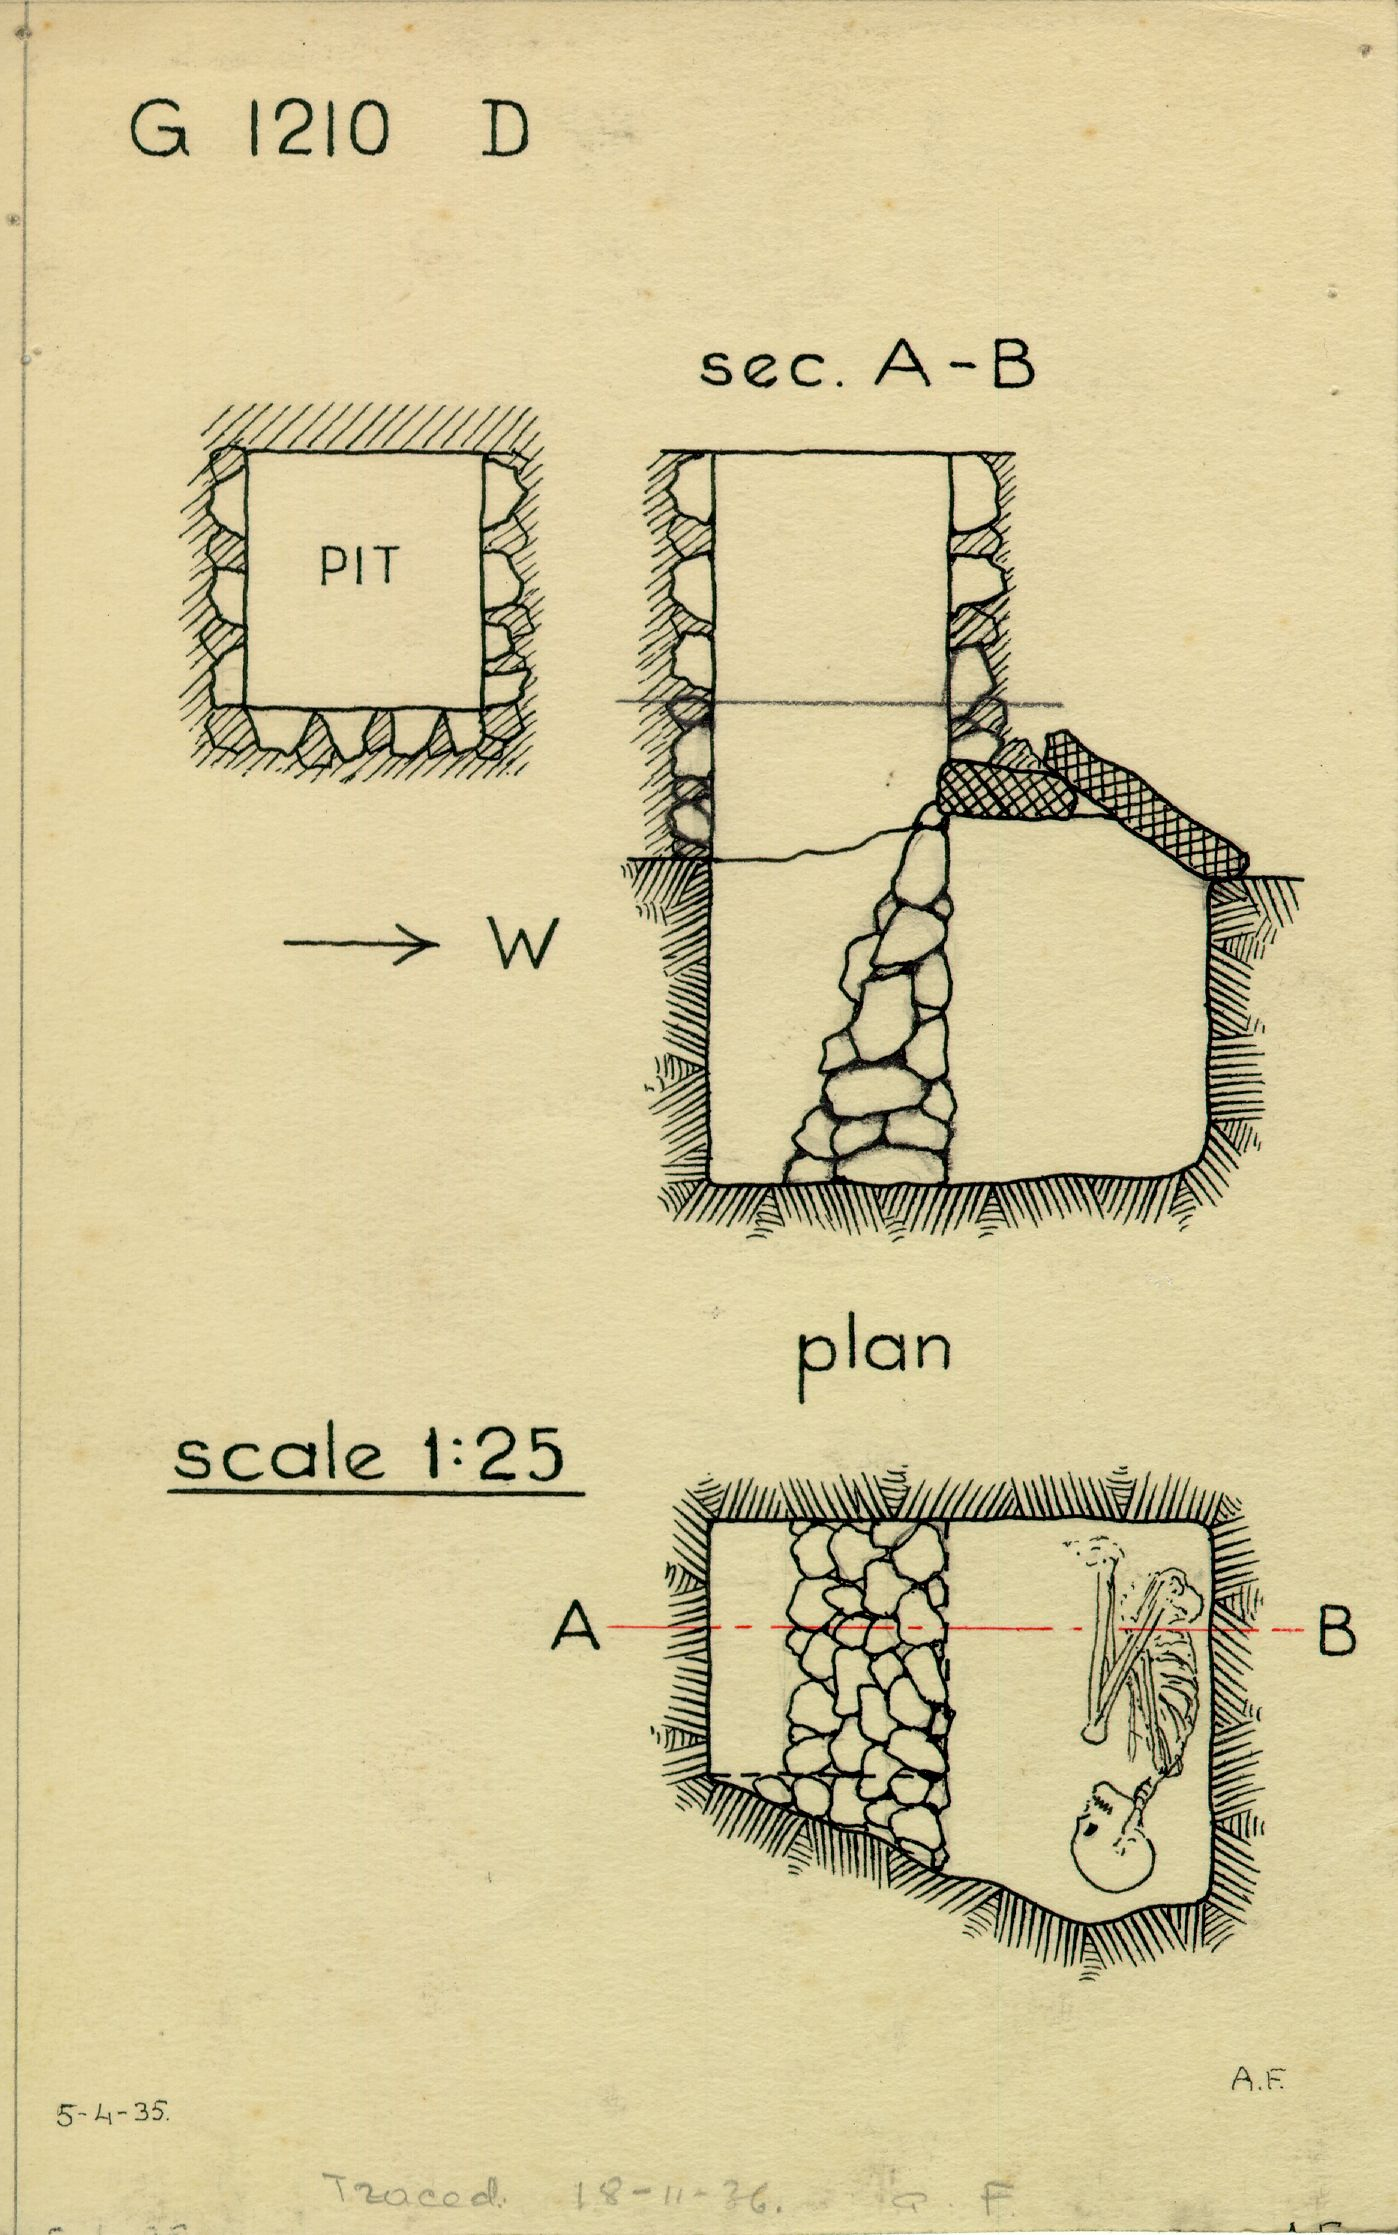 Maps and plans: G 1210, Shaft D